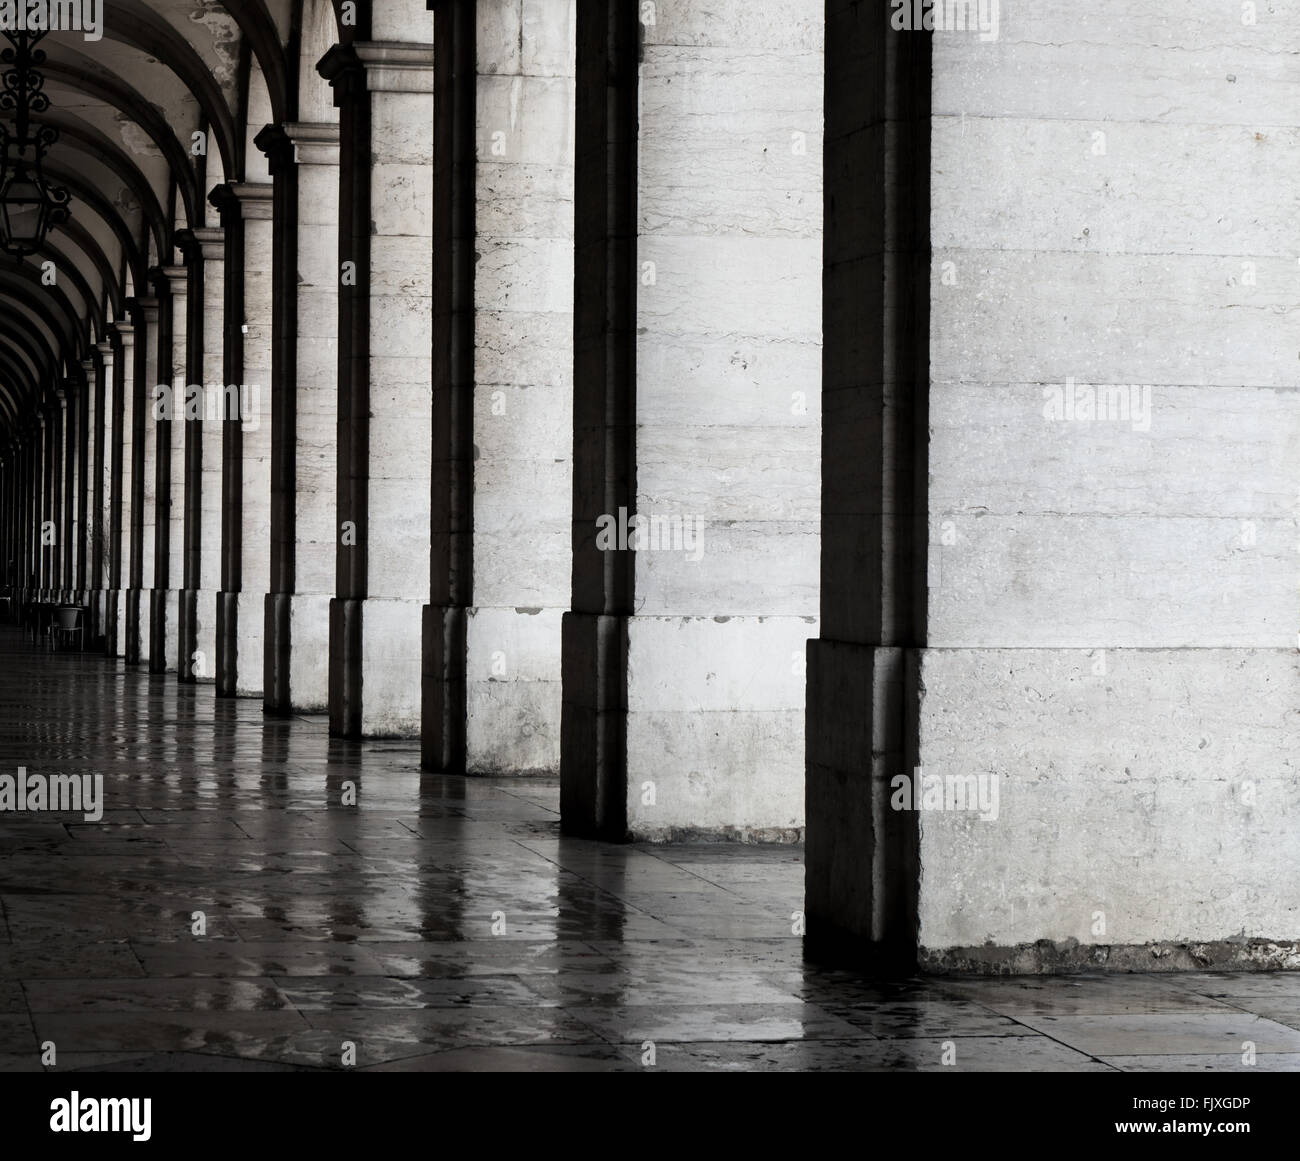 Passageway Of Historic Building - Stock Image